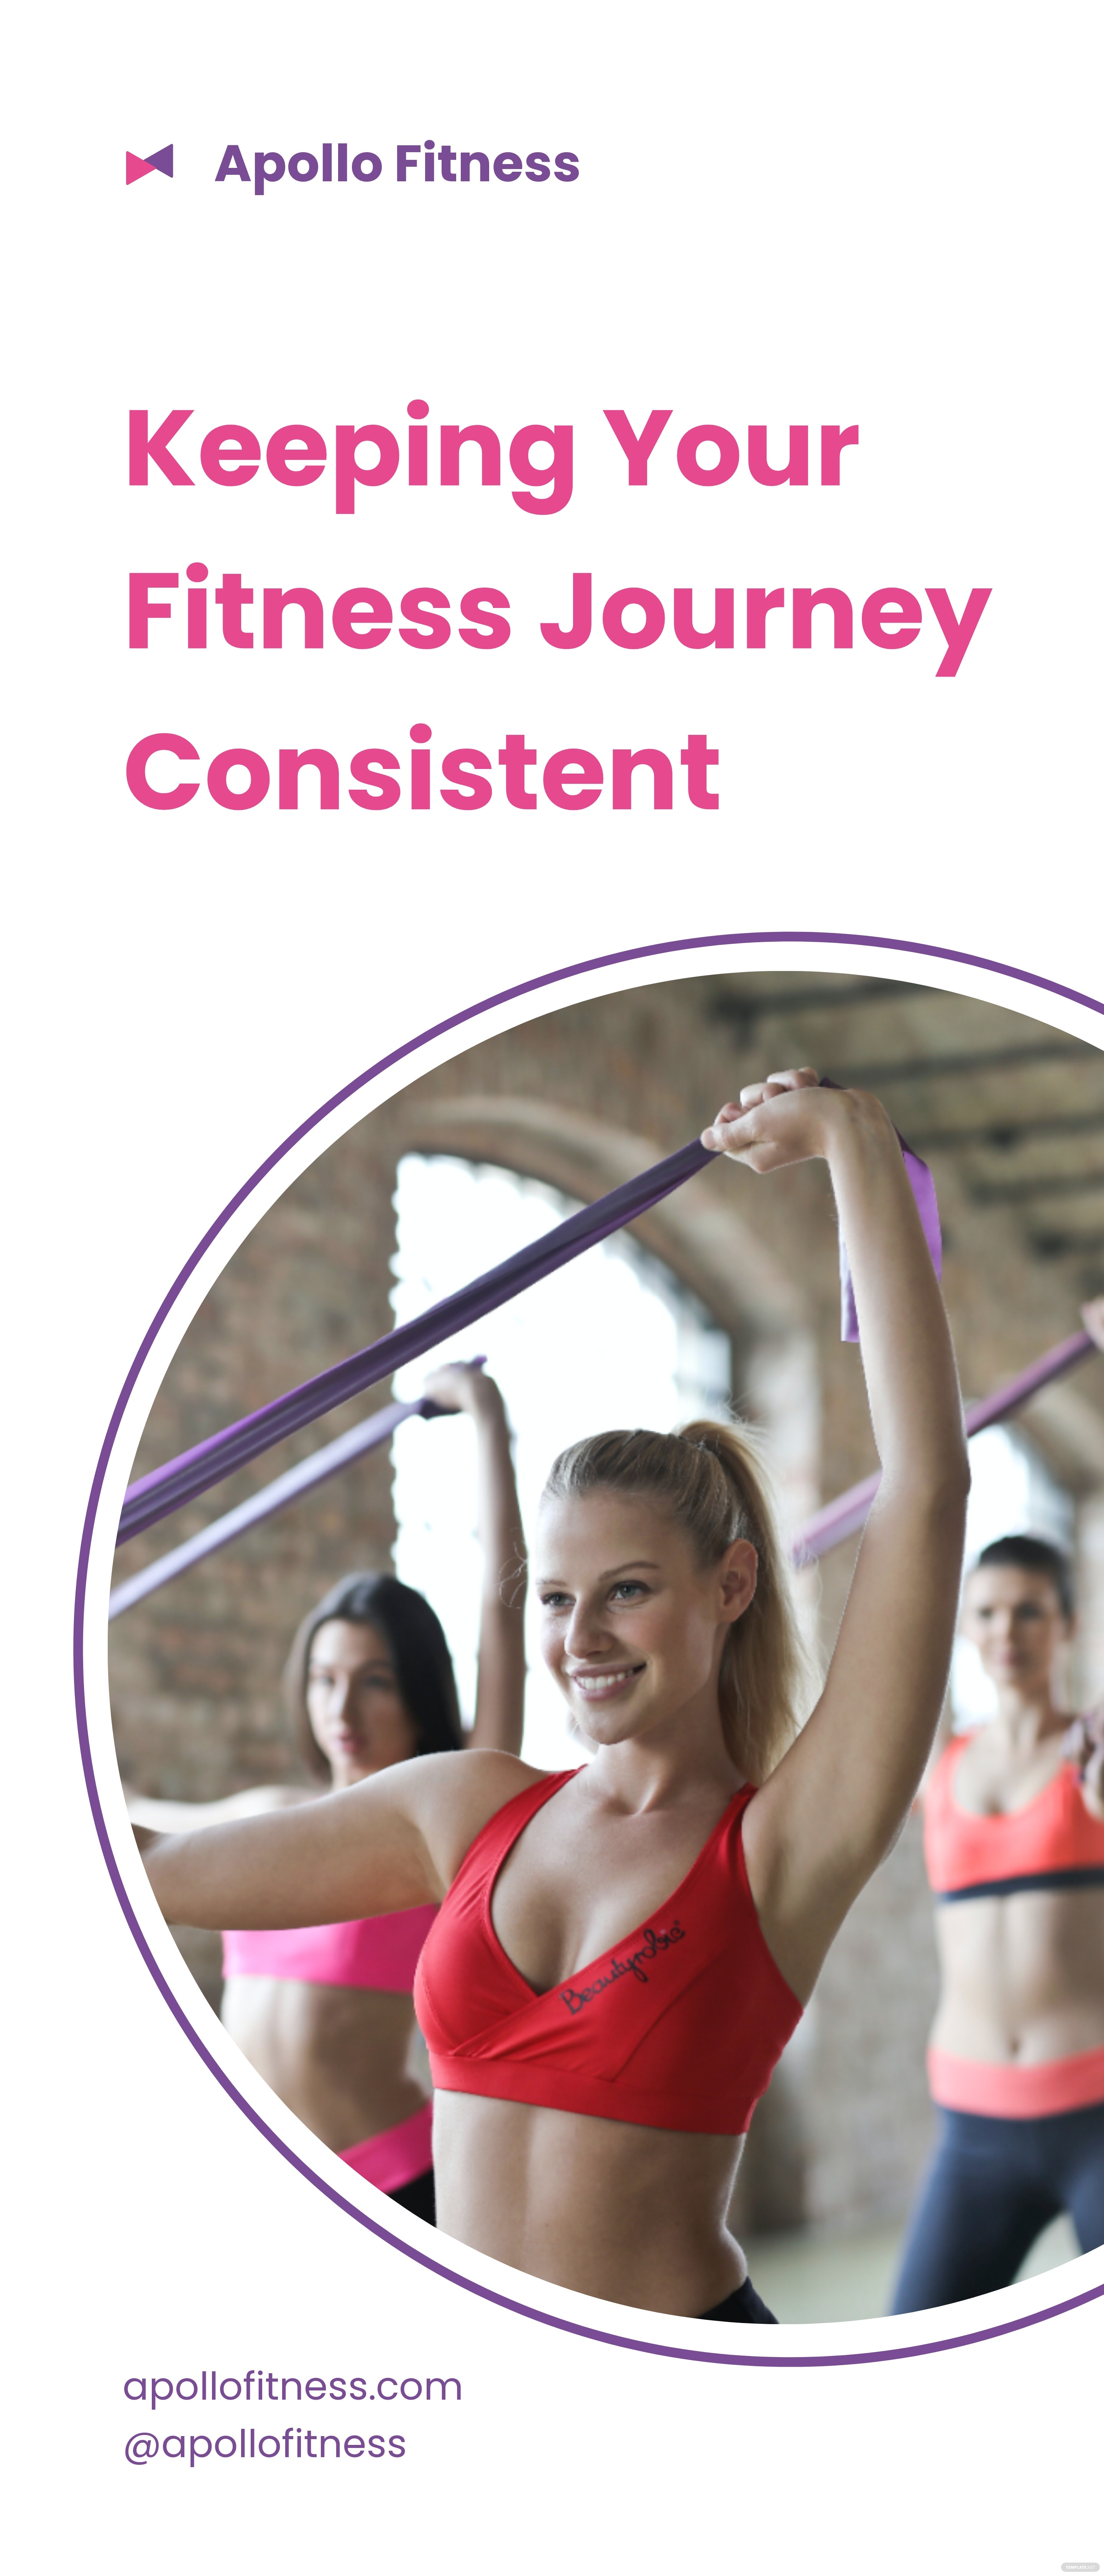 Creative Fitness Roll Up Banner Template.jpe